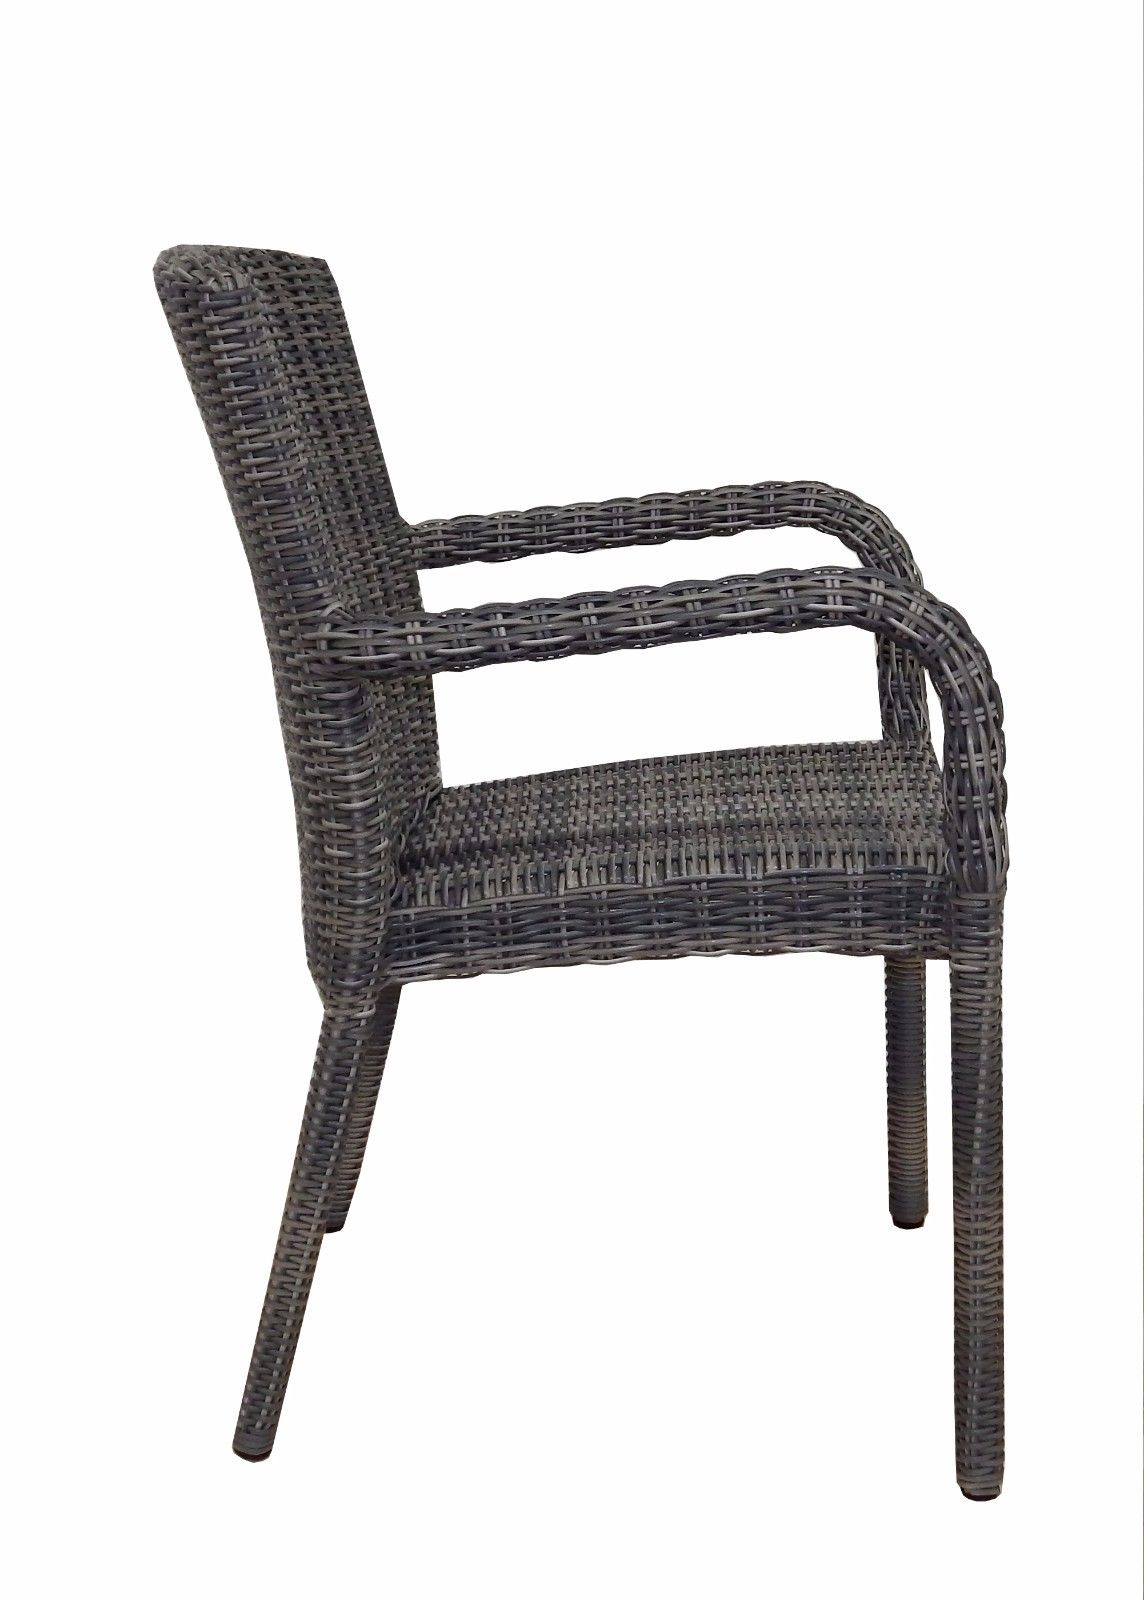 Taste Palermo Stacking Chair - Frost